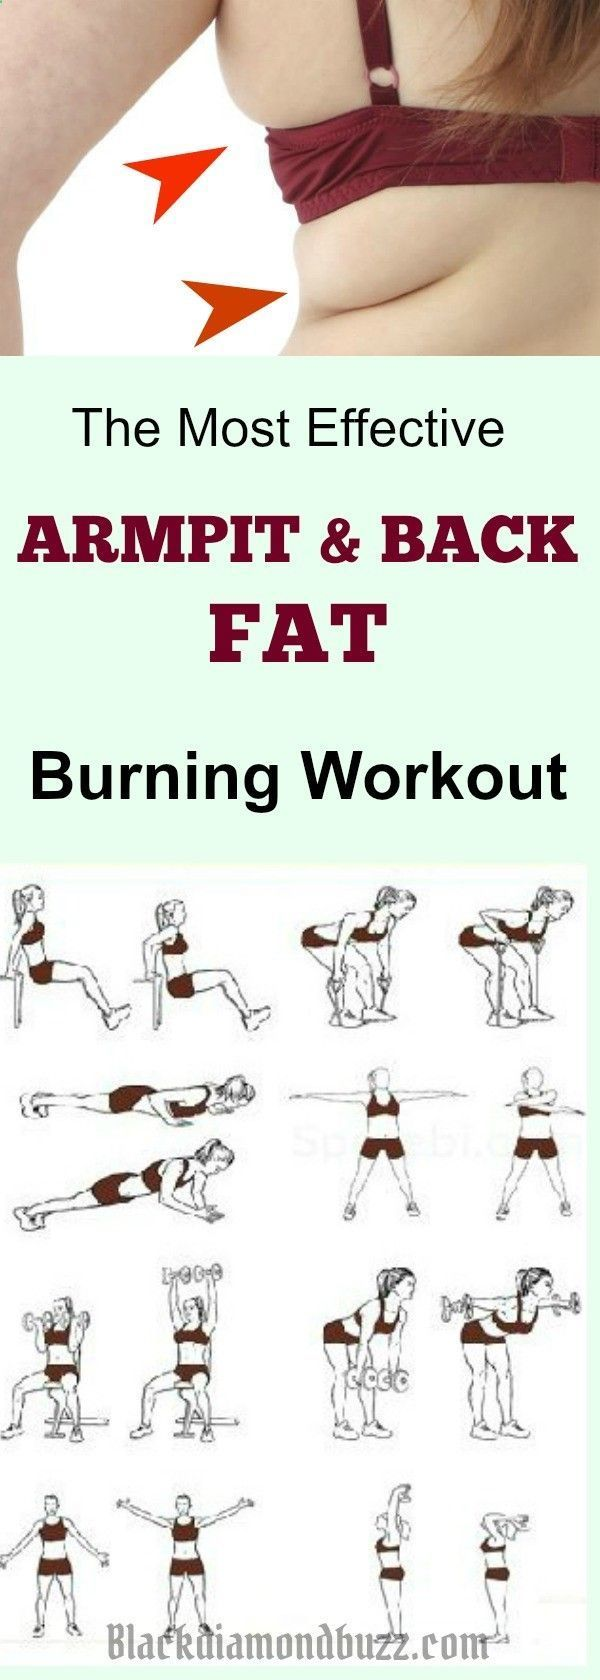 107 best Weight Loss Ideas images on Pinterest   Health, Exercises ...